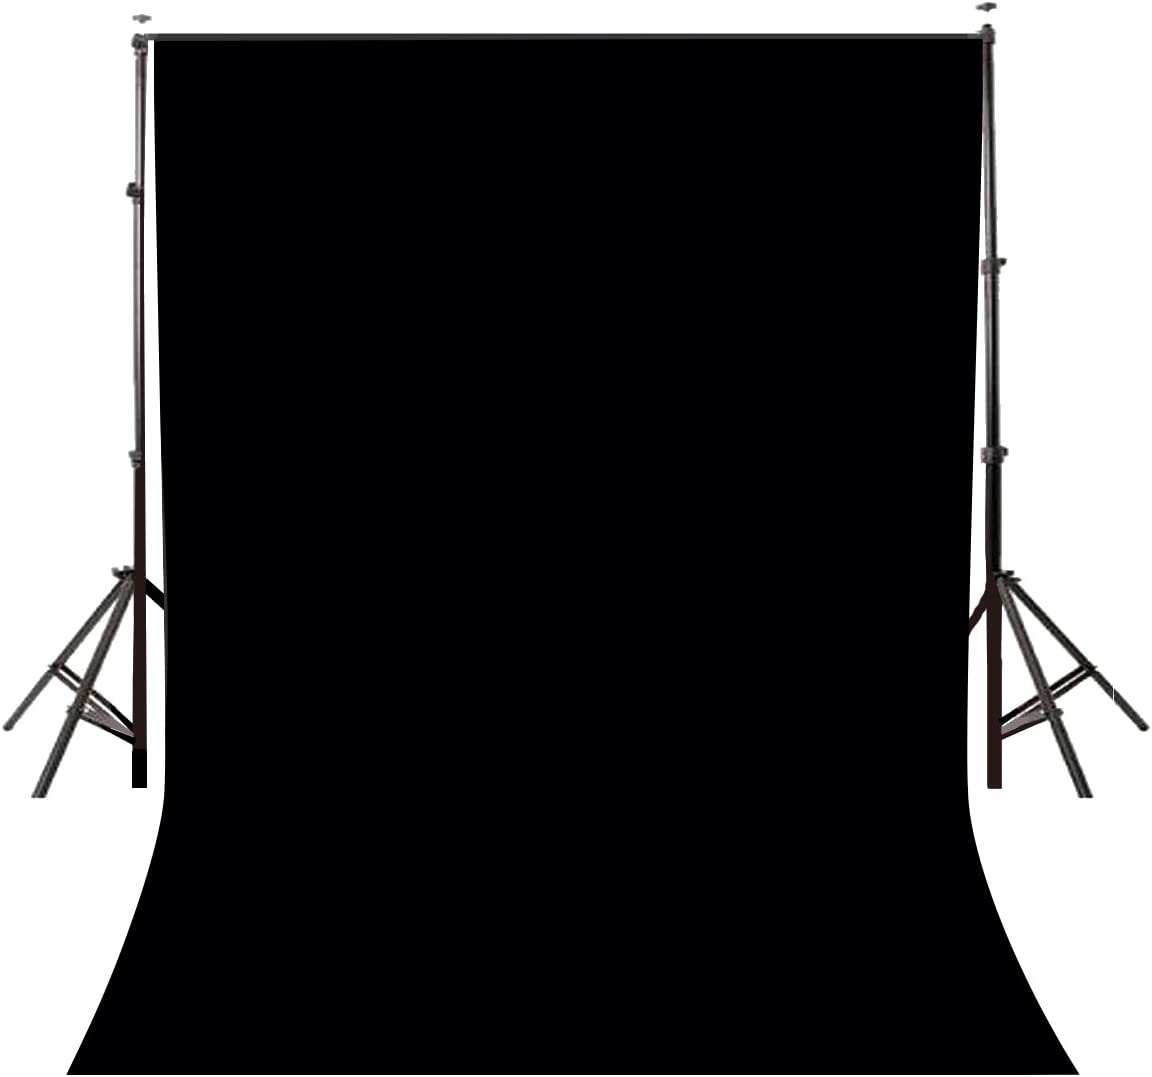 Lyly County Background 5x7ft Non-Woven Fabric Solid Color Black Screen Photo Backdrop Studio Photography Props LY062